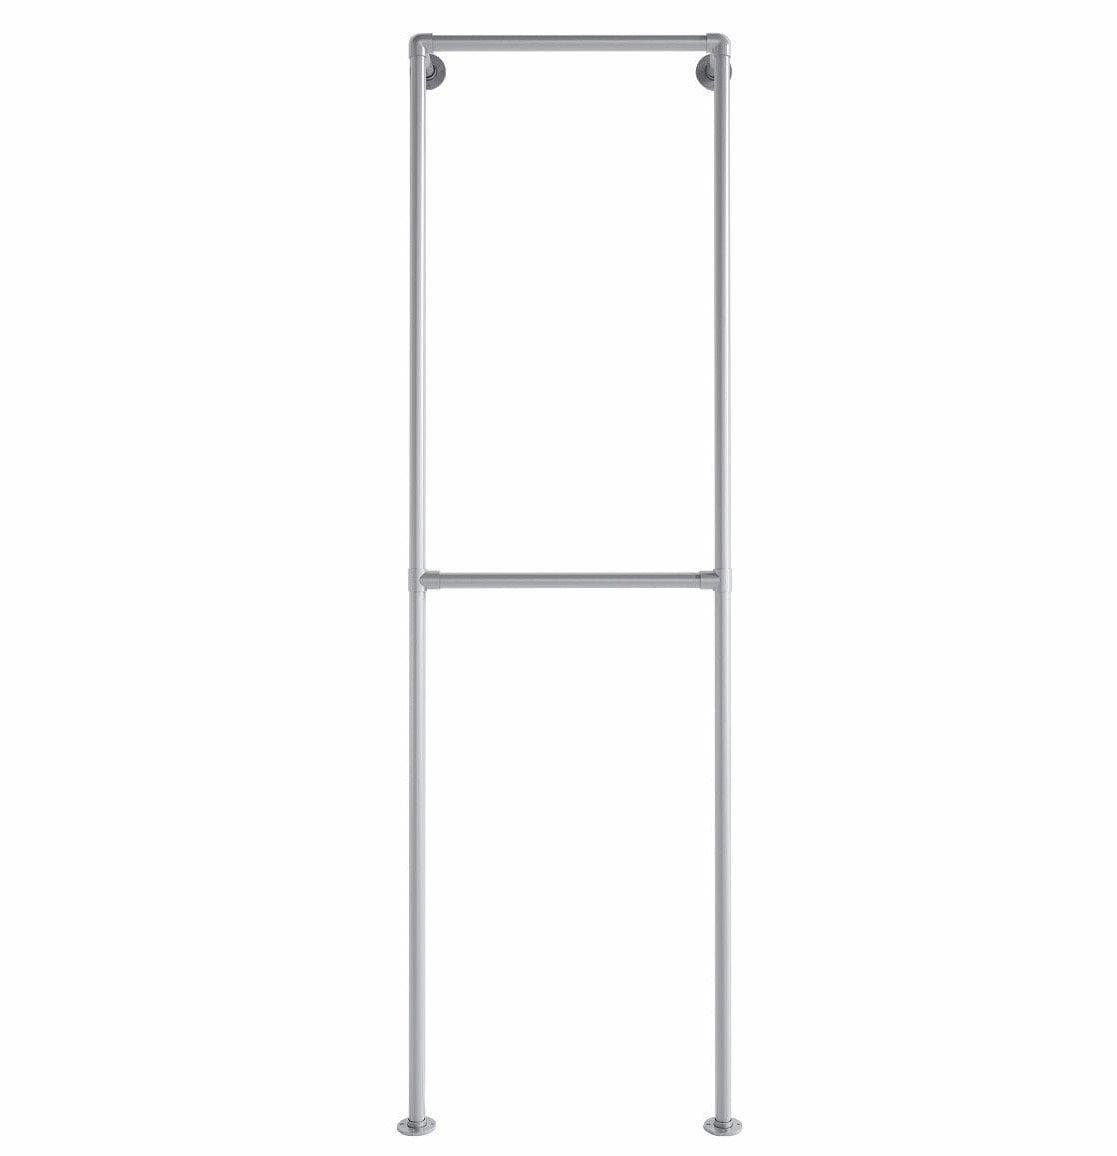 Ziito Clothes Rail E1dr / 50 cm Double Wall Tøjstativ